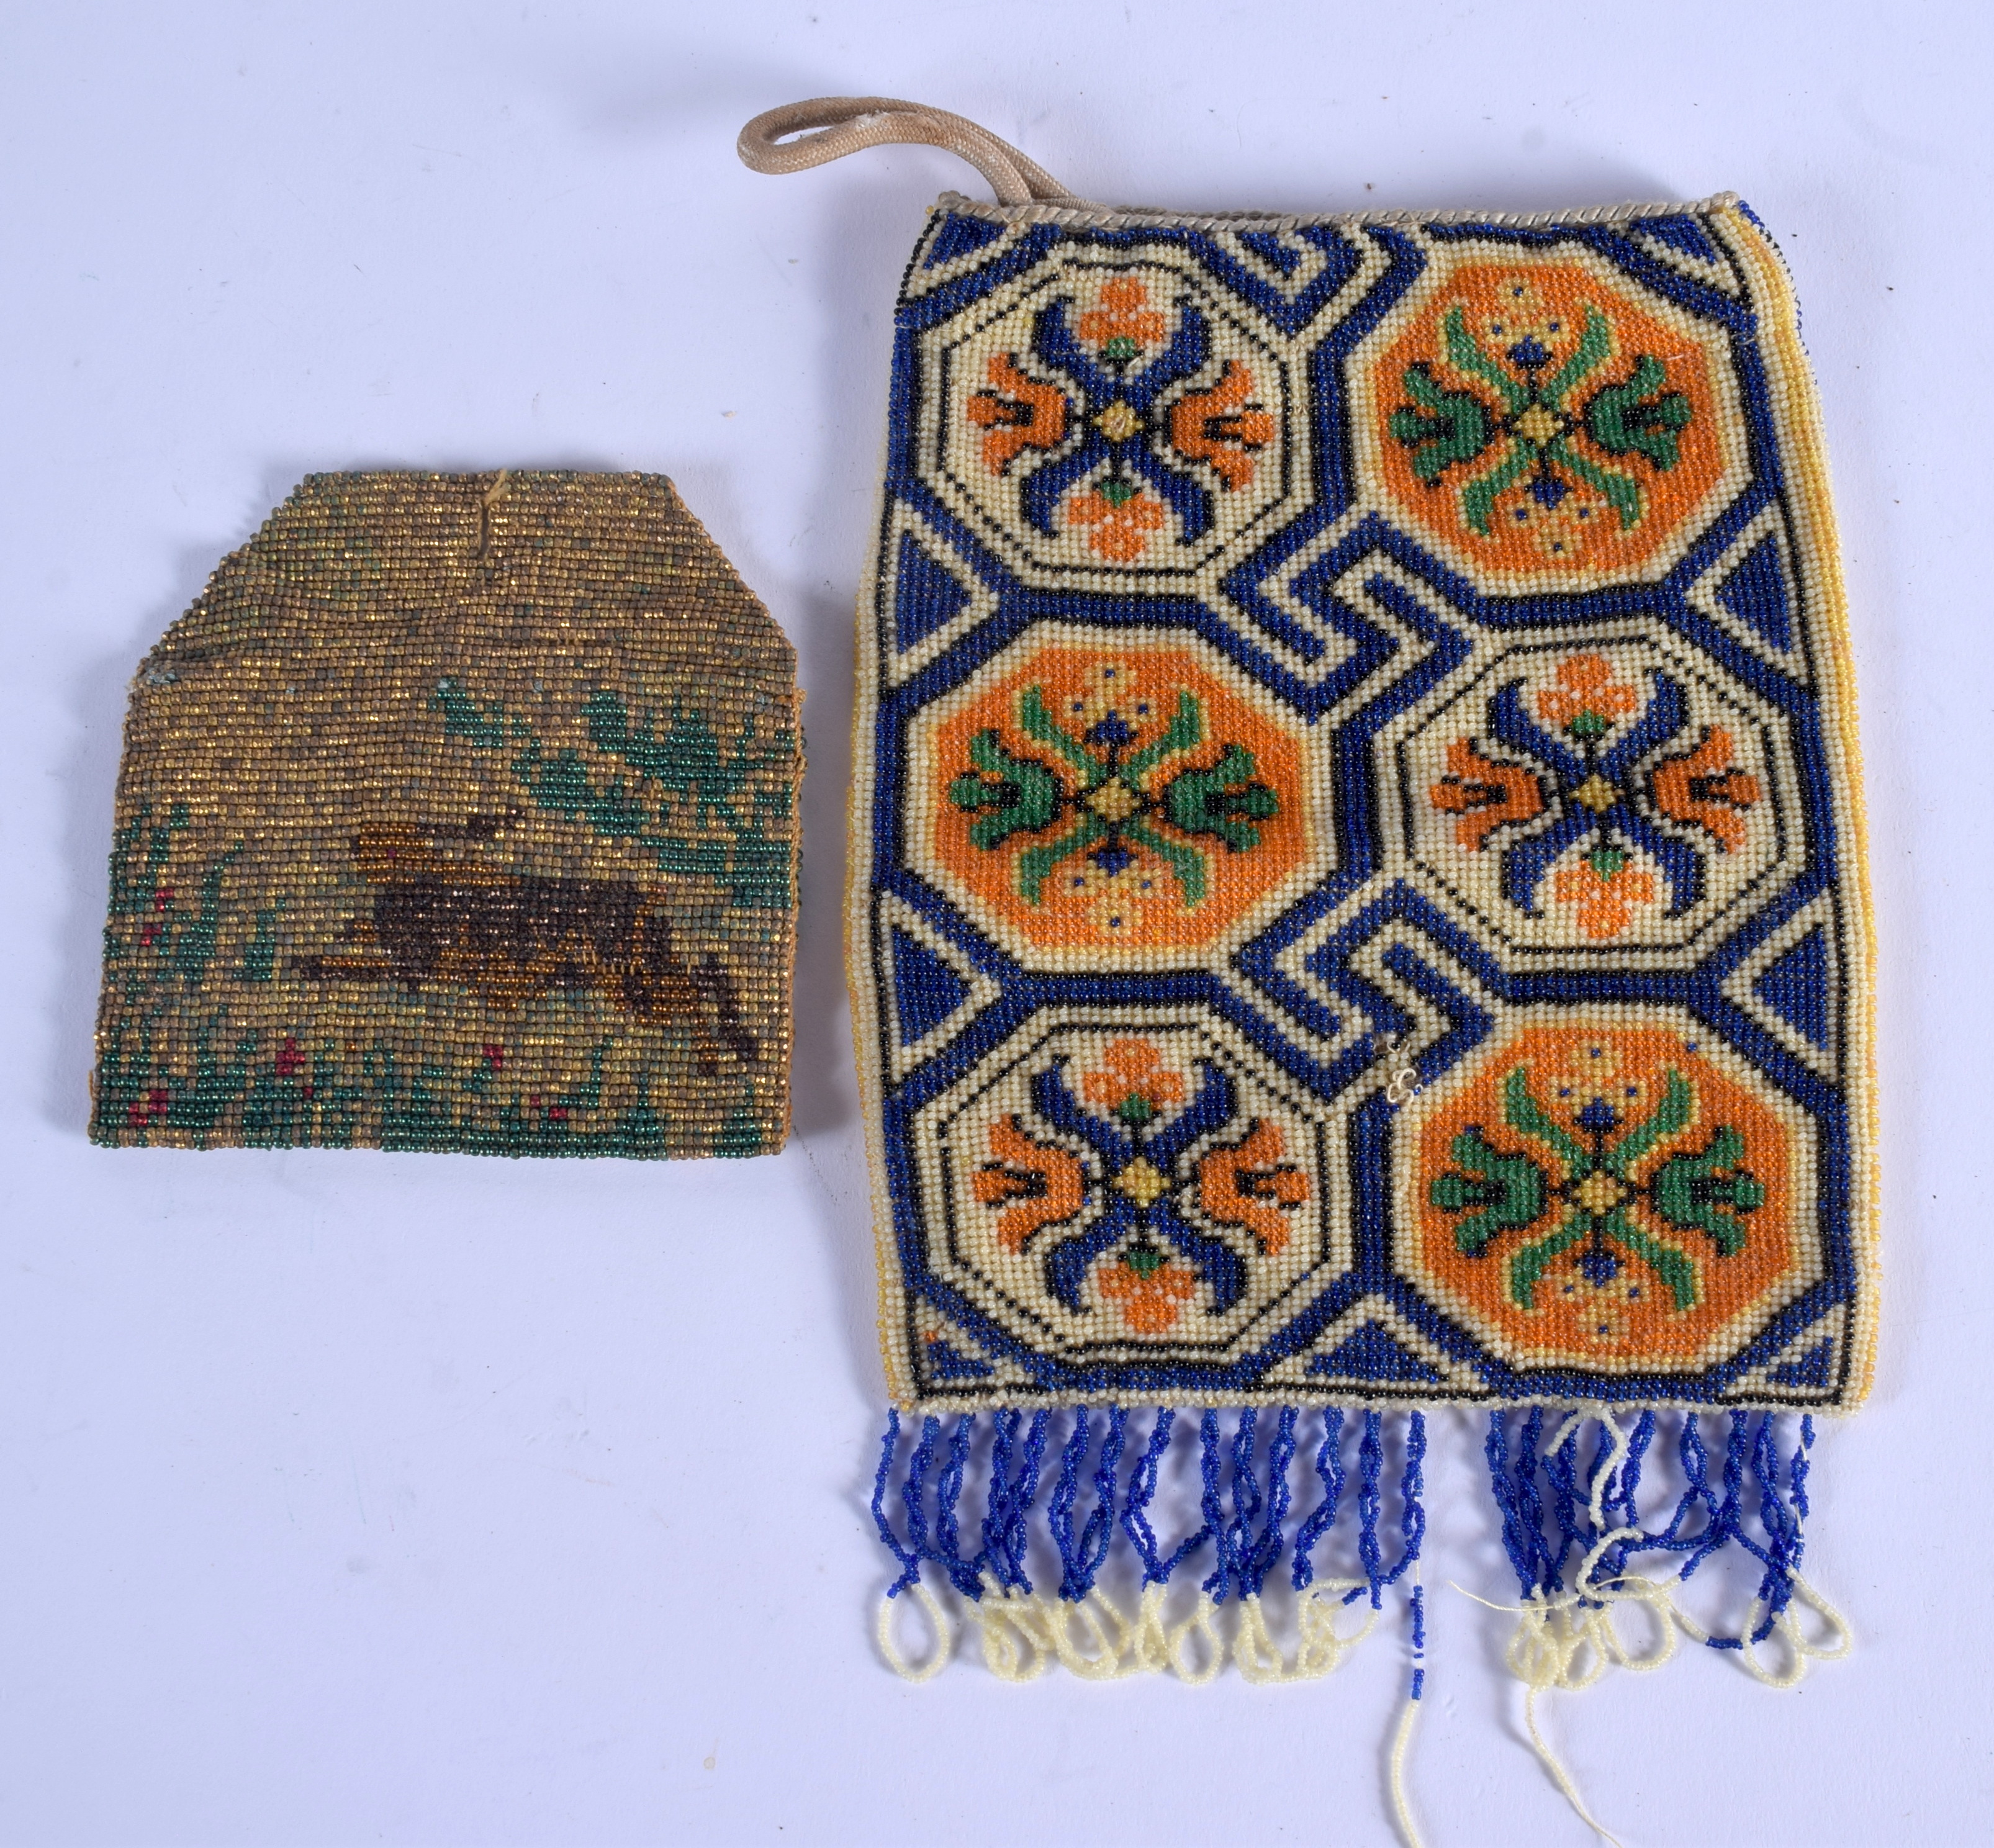 TWO VINTAGE PURSES. (2) - Image 2 of 2